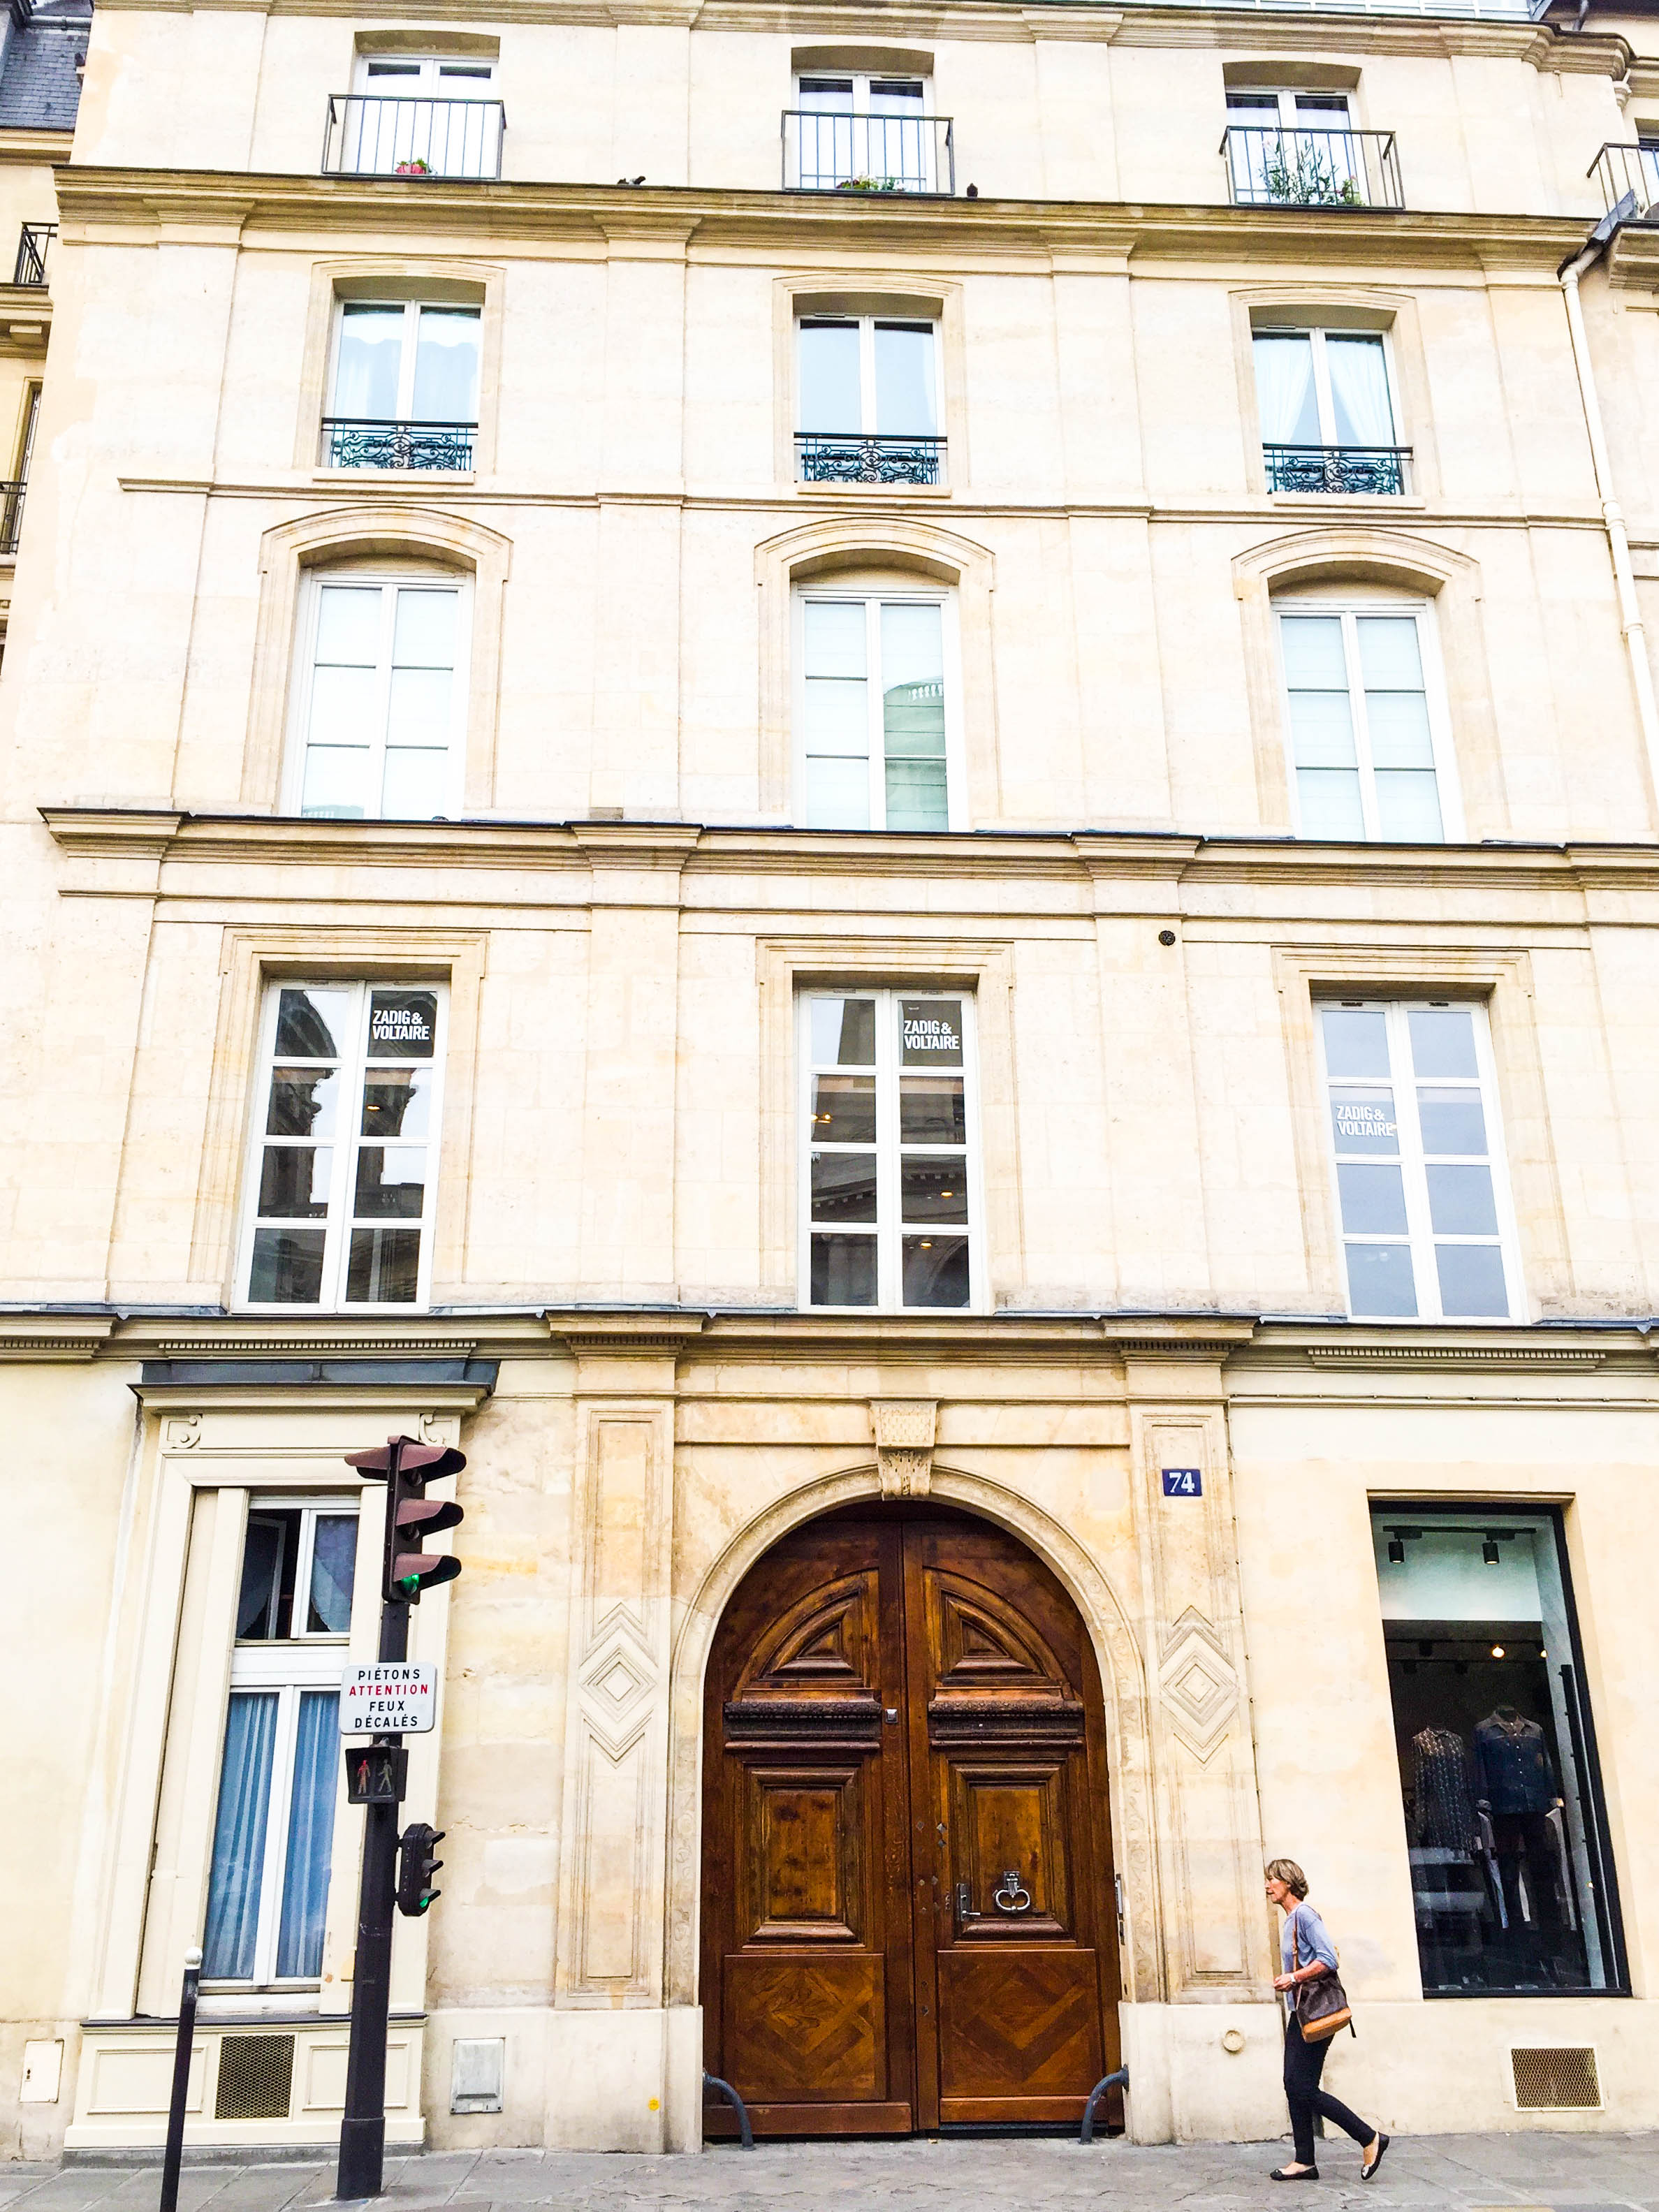 All of the doors in Paris are massive, which is strange because their hallways, showers,and rooms are tiny.